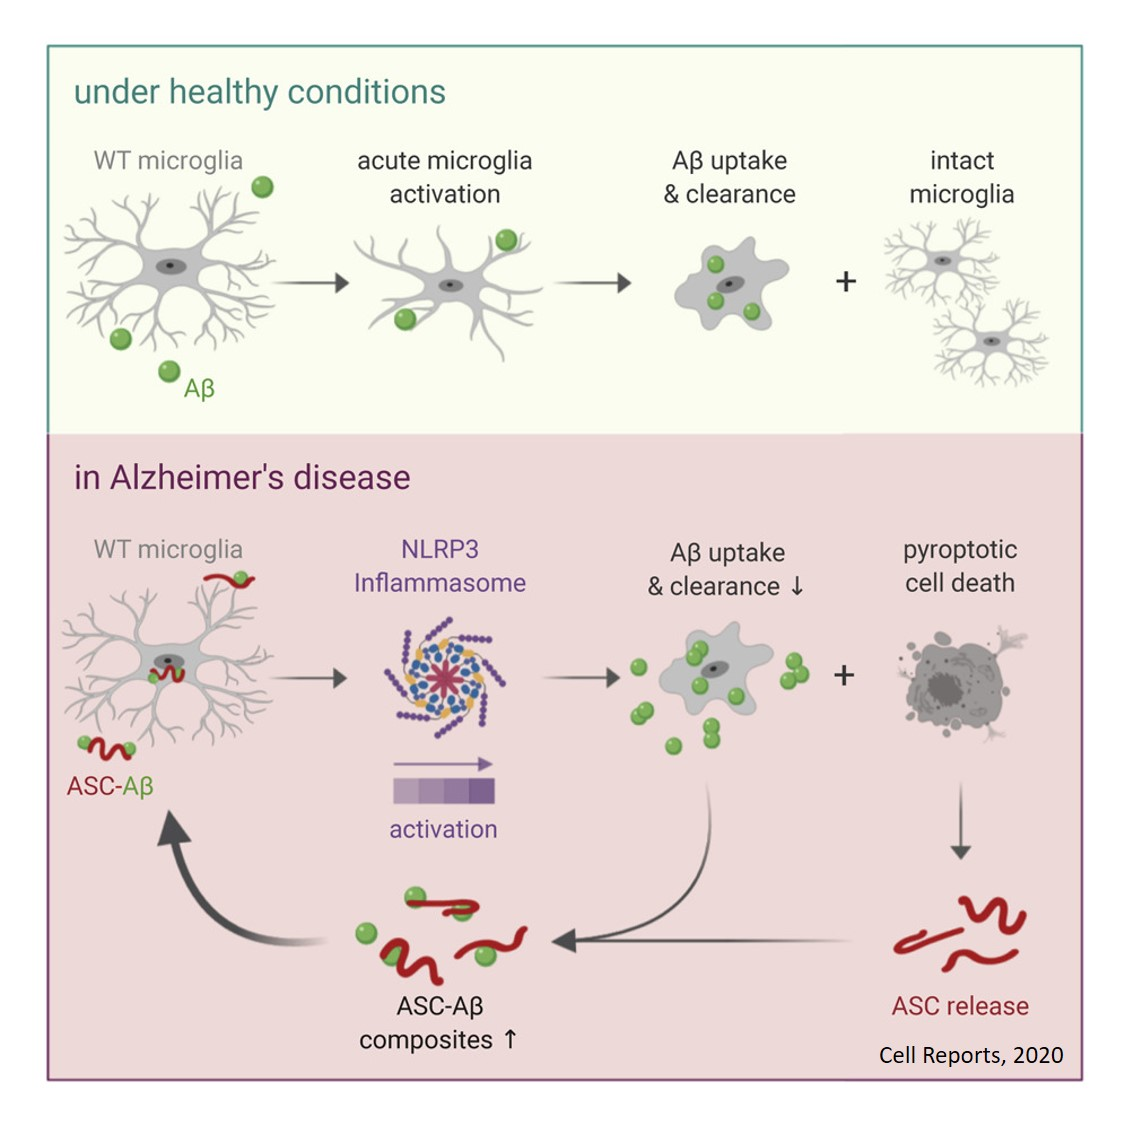 How inflammation triggers fatal cycle in Alzheimer's disease